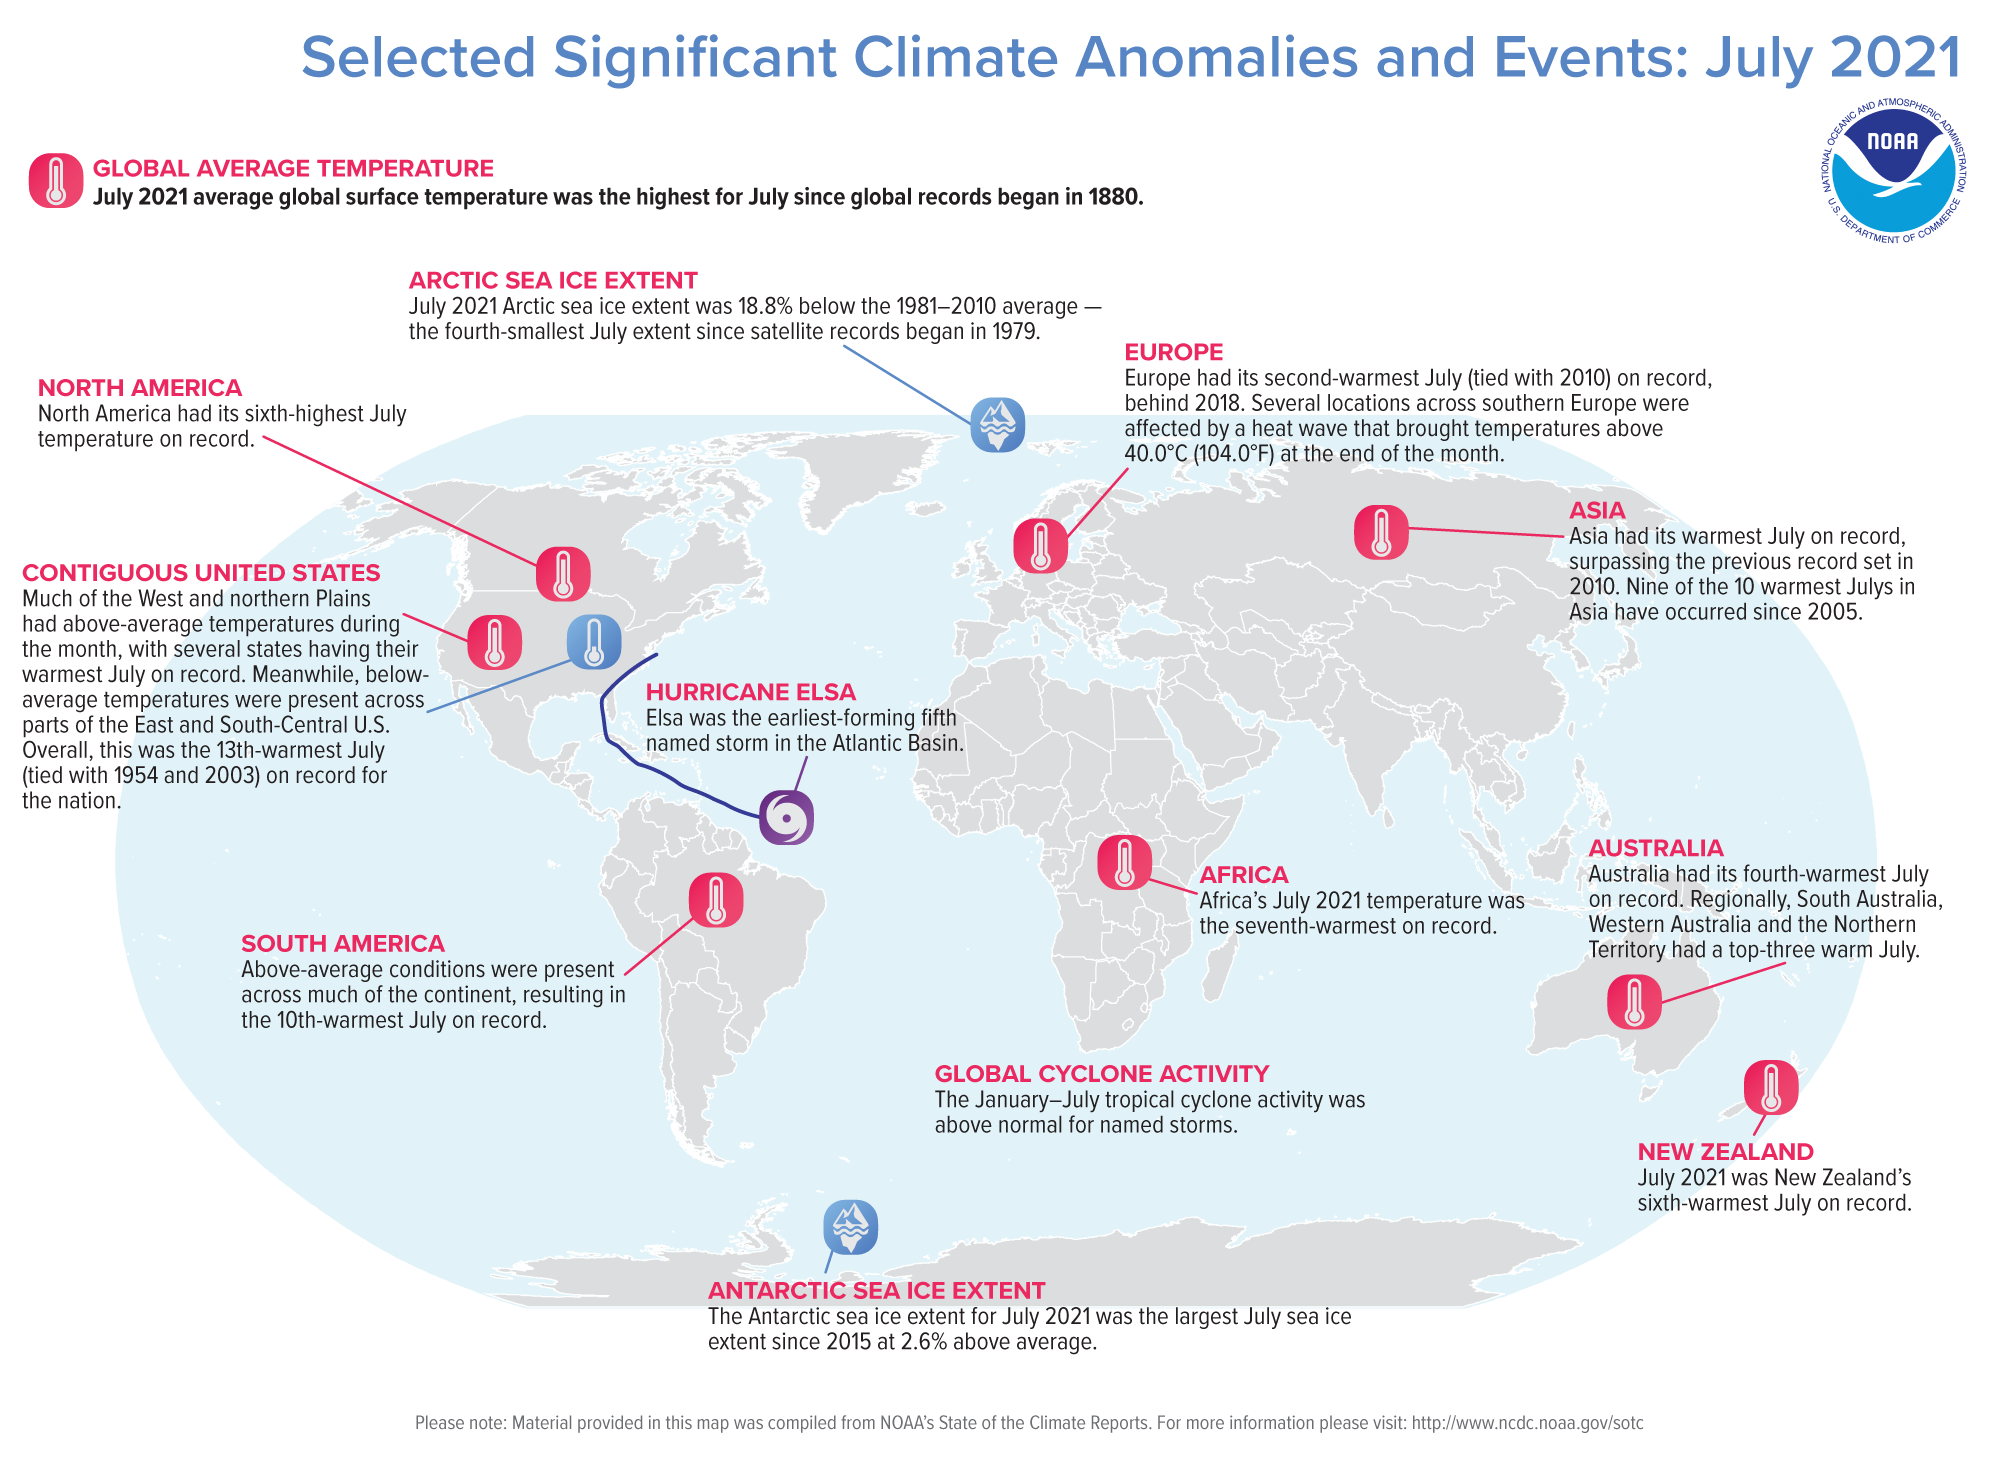 A map of the world plotted with some of the most significant climate events that occurred during July 2021.